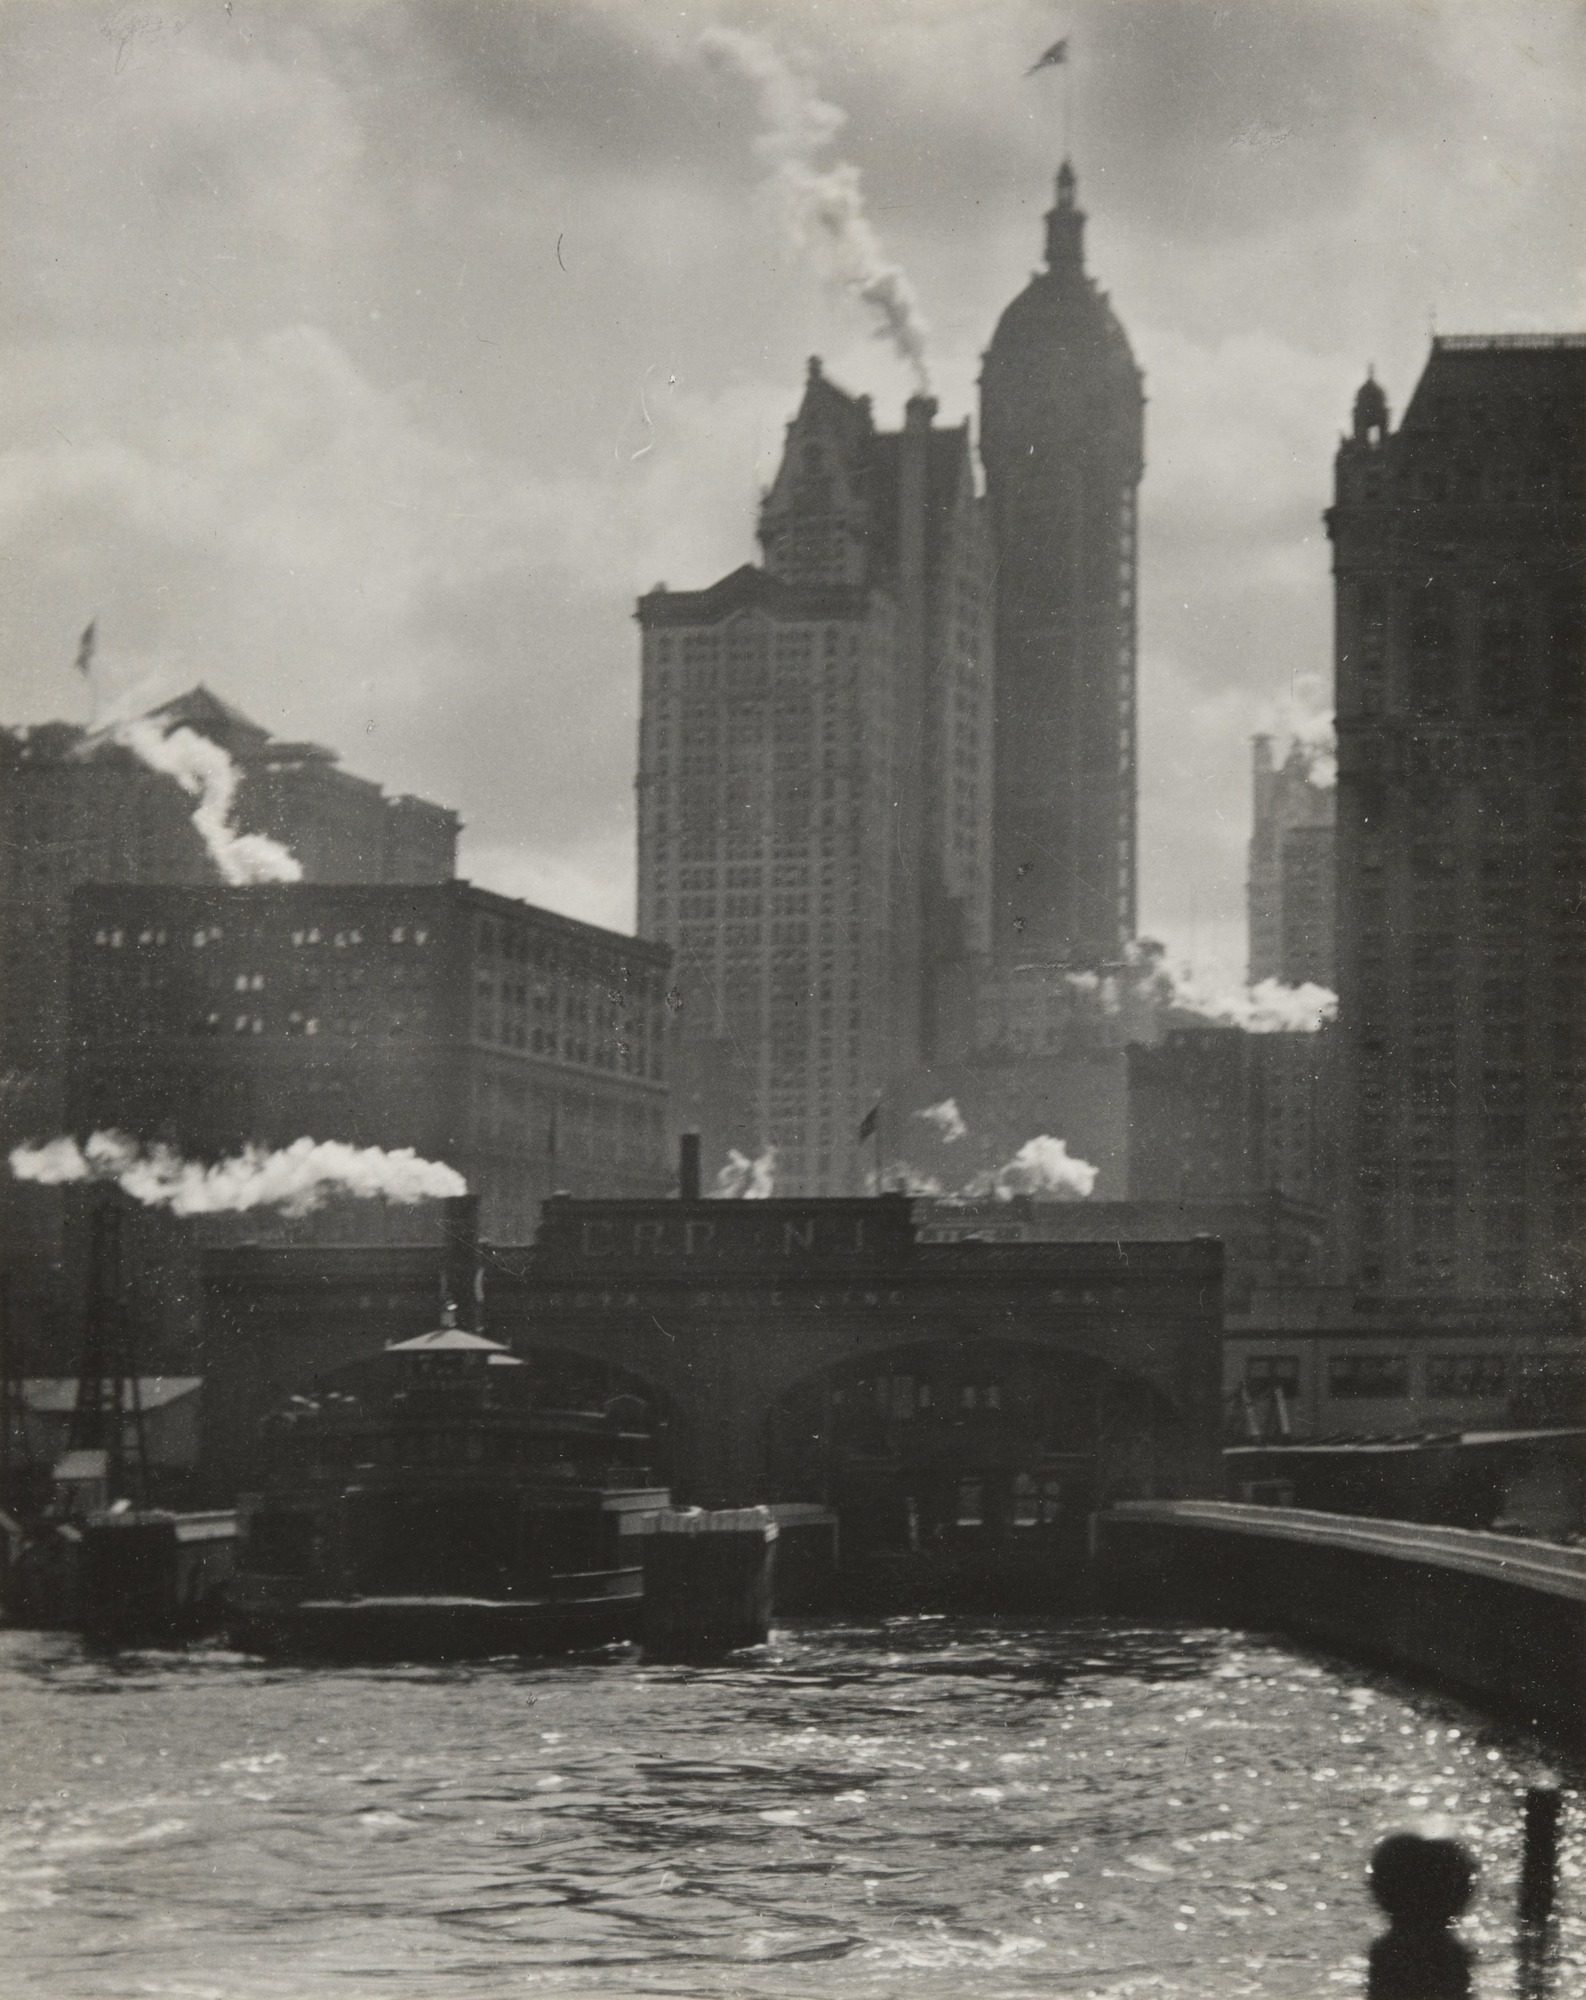 Fotó: Alfred Stieglitz: The City of Ambition, 1910 (megjelent: Camera Work 36.; 1911)